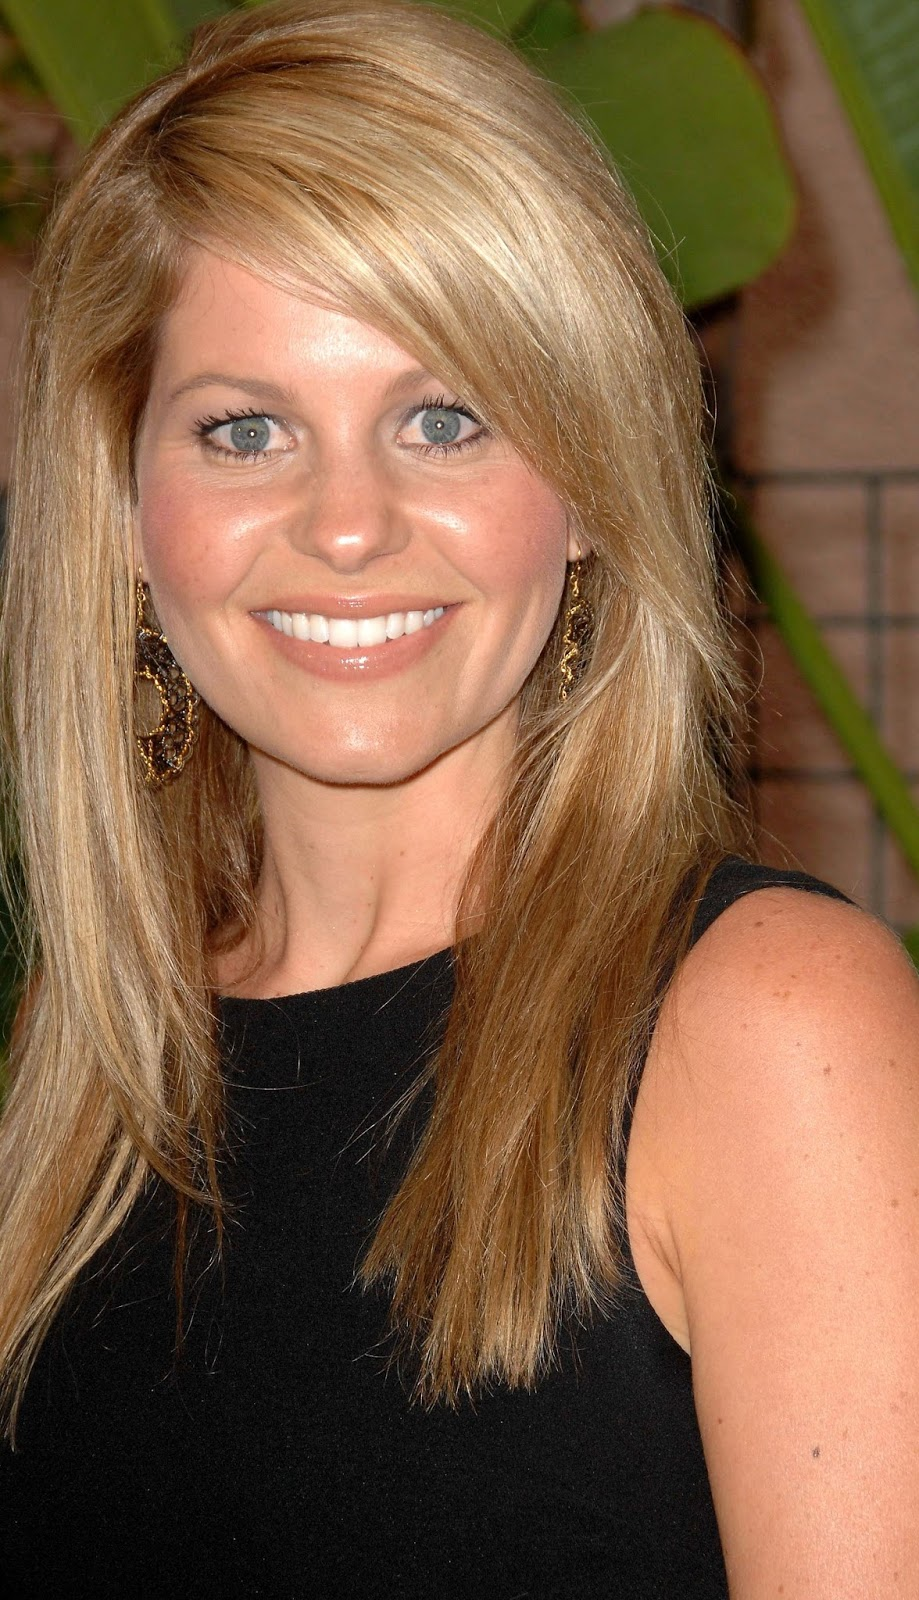 bridgette cameron ridenourbridgette cameron age, bridgette cameron on full house, bridgette cameron ridenour, bridgette cameron net worth, bridgette cameron birthday, bridgette cameron ridenour age, bridgette cameron siblings, bridgette cameron instagram, bridgette cameron pictures, bridgette cameron home improvement, bridgette cameron pics, bridgette cameron wikipedia, bridgette cameron, bridgette cameron alpine, bridgette cameron bio, bridgette cameron's saving christmas, bridgette cameron movies, bridgette cameron height, bridget cameron edinburgh, bridgette cameron ridenour instagram